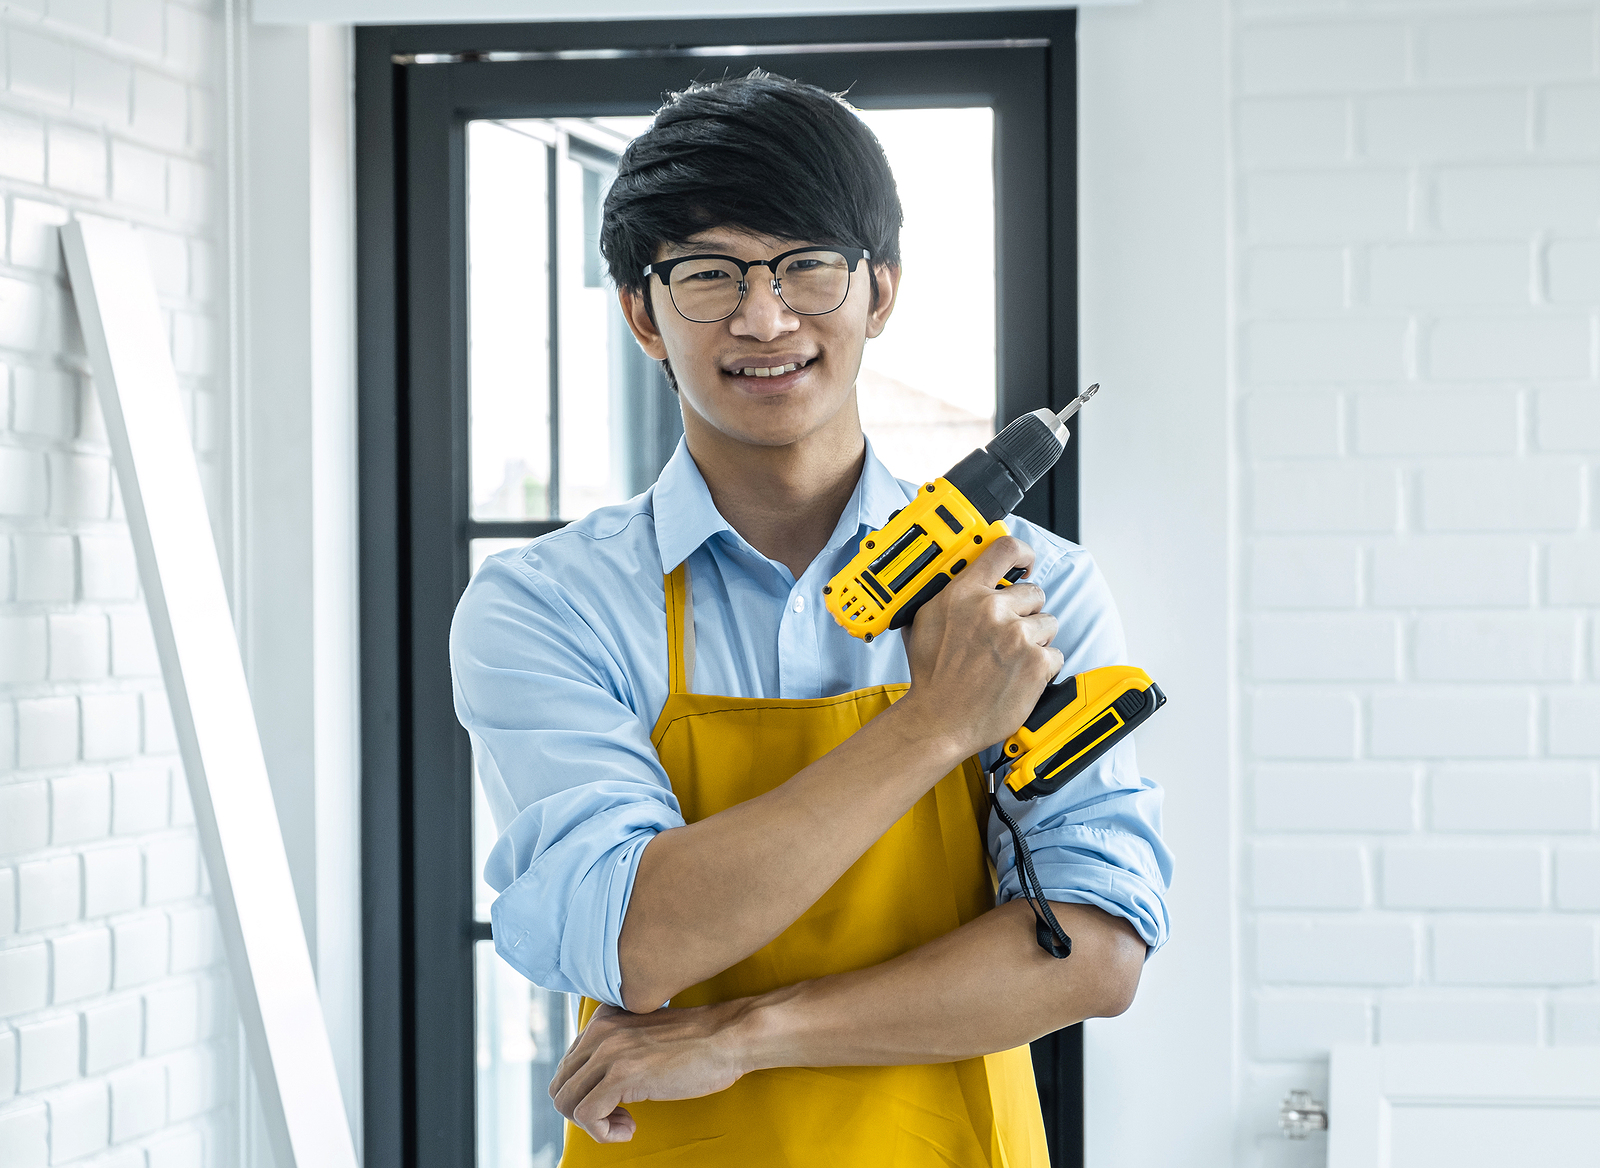 a young man hold a drill as he begins a home improvement project.